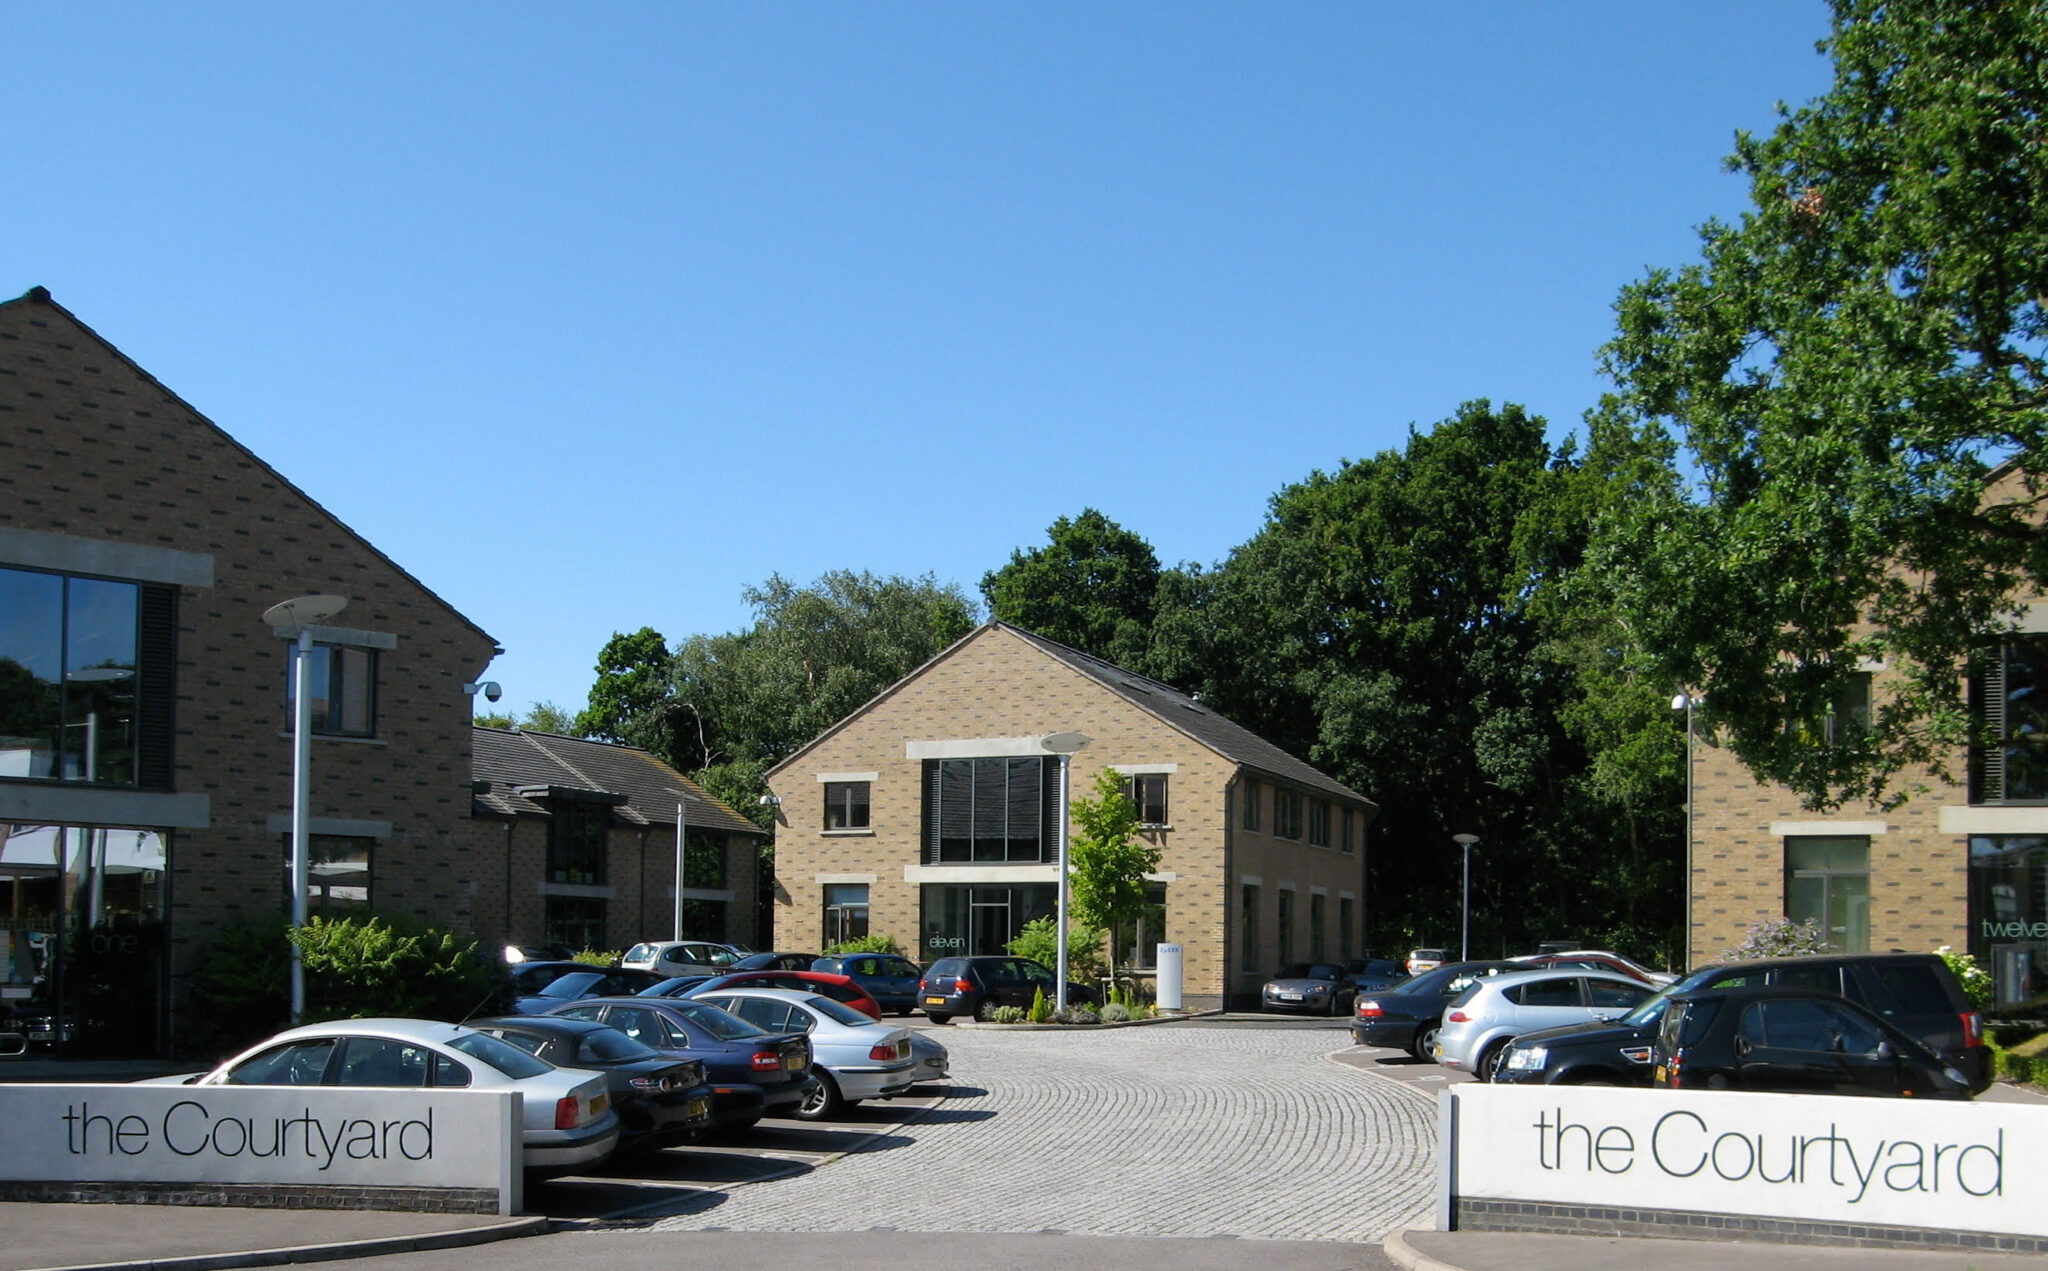 The Courtyard Bracknell offices to rent Bracknell entrance